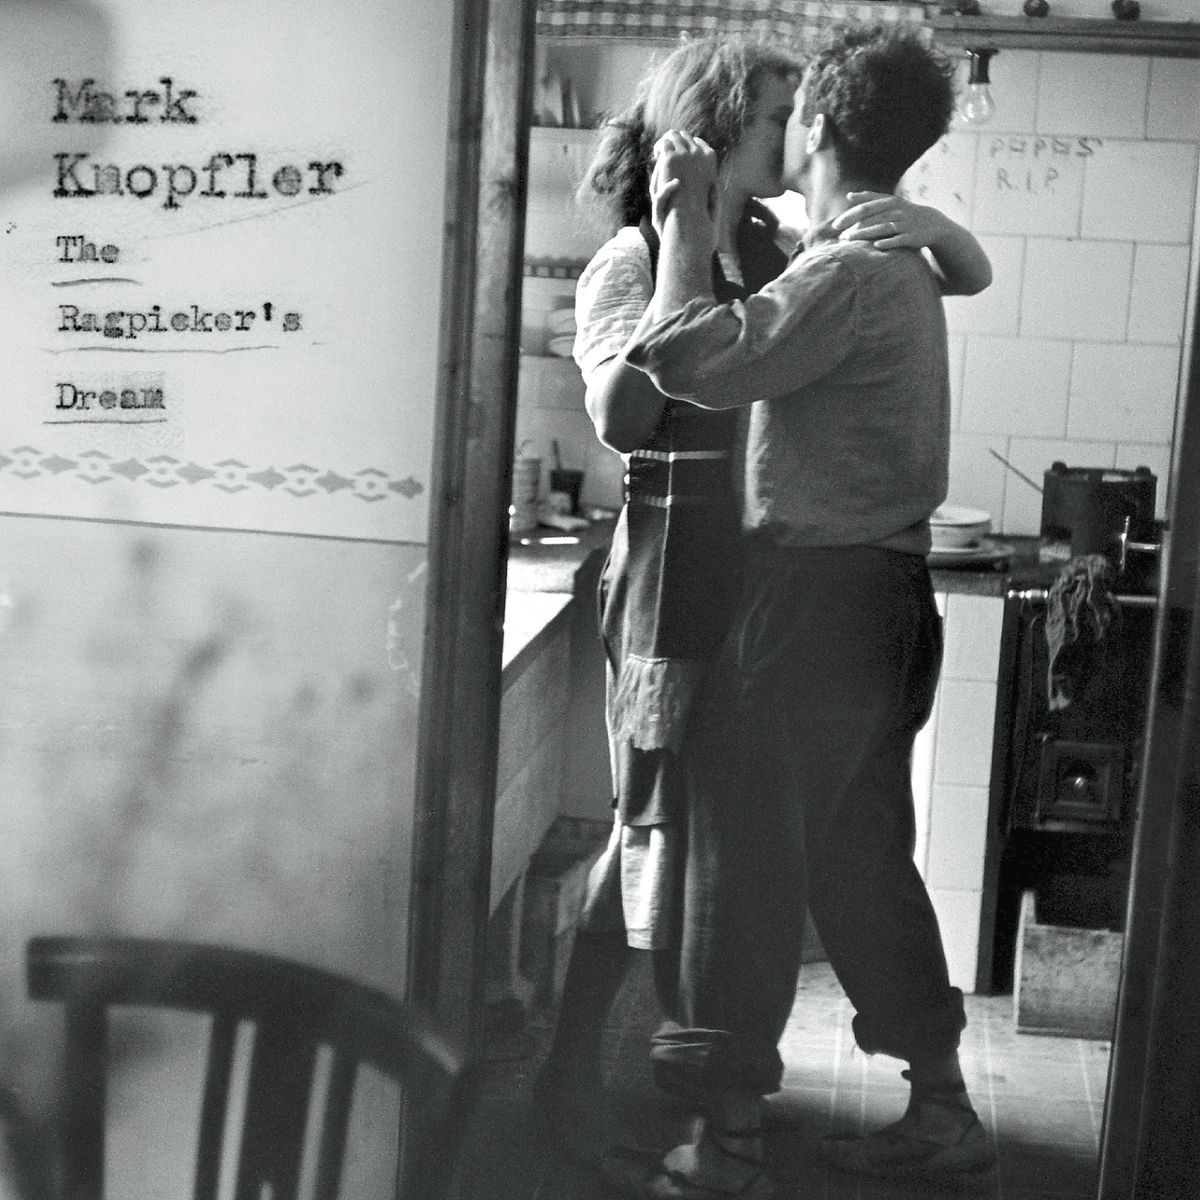 The Ragpickers Dream - Mark Knopfler - Musik - Mercury (Universal Music) - 0044006329321 - 30/9-2002